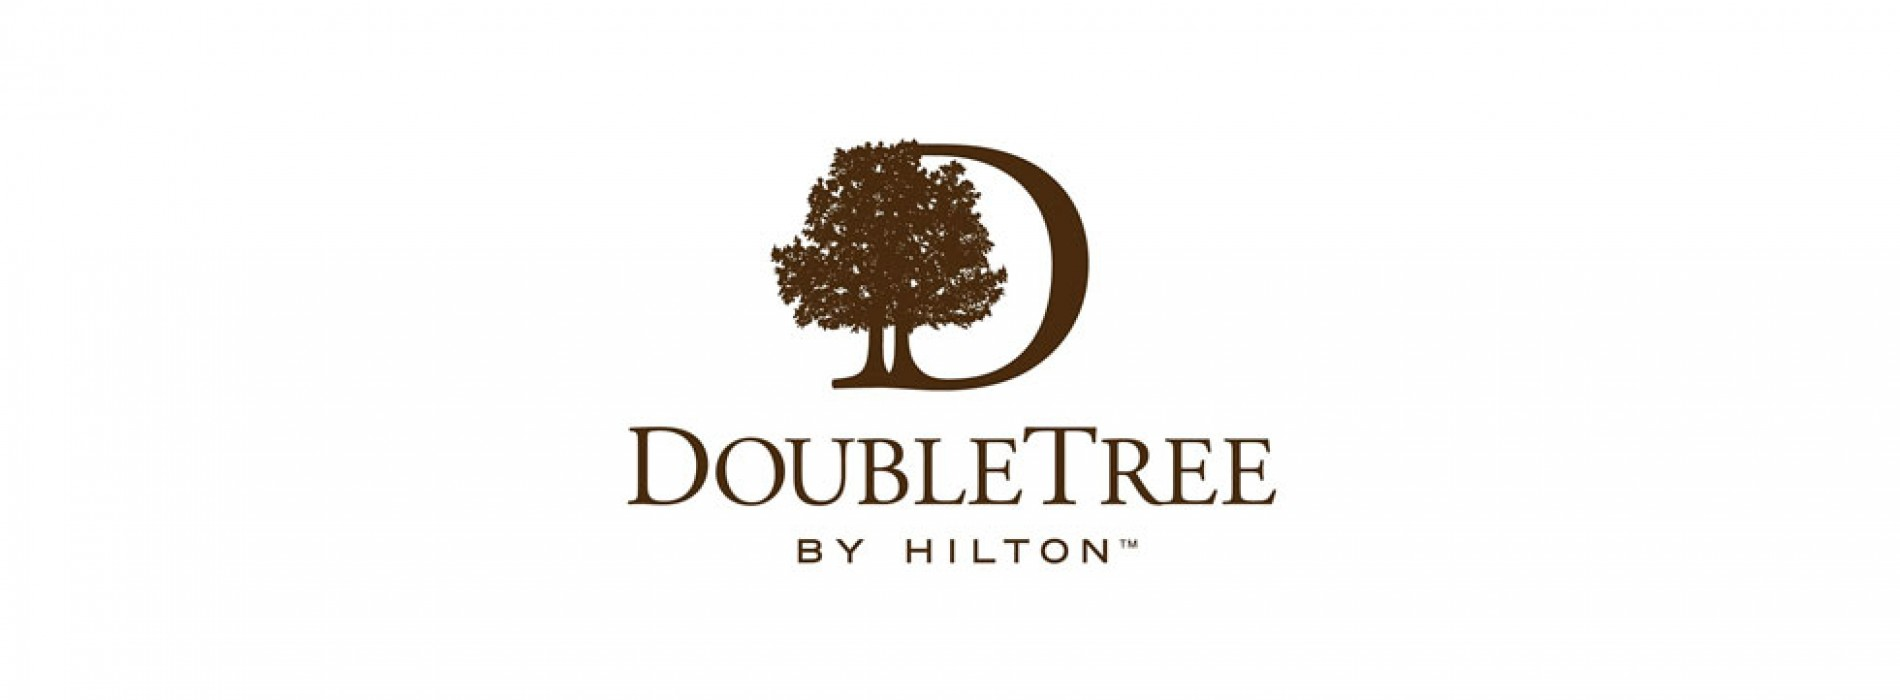 DoubleTree by Hilton opens new hotel in London